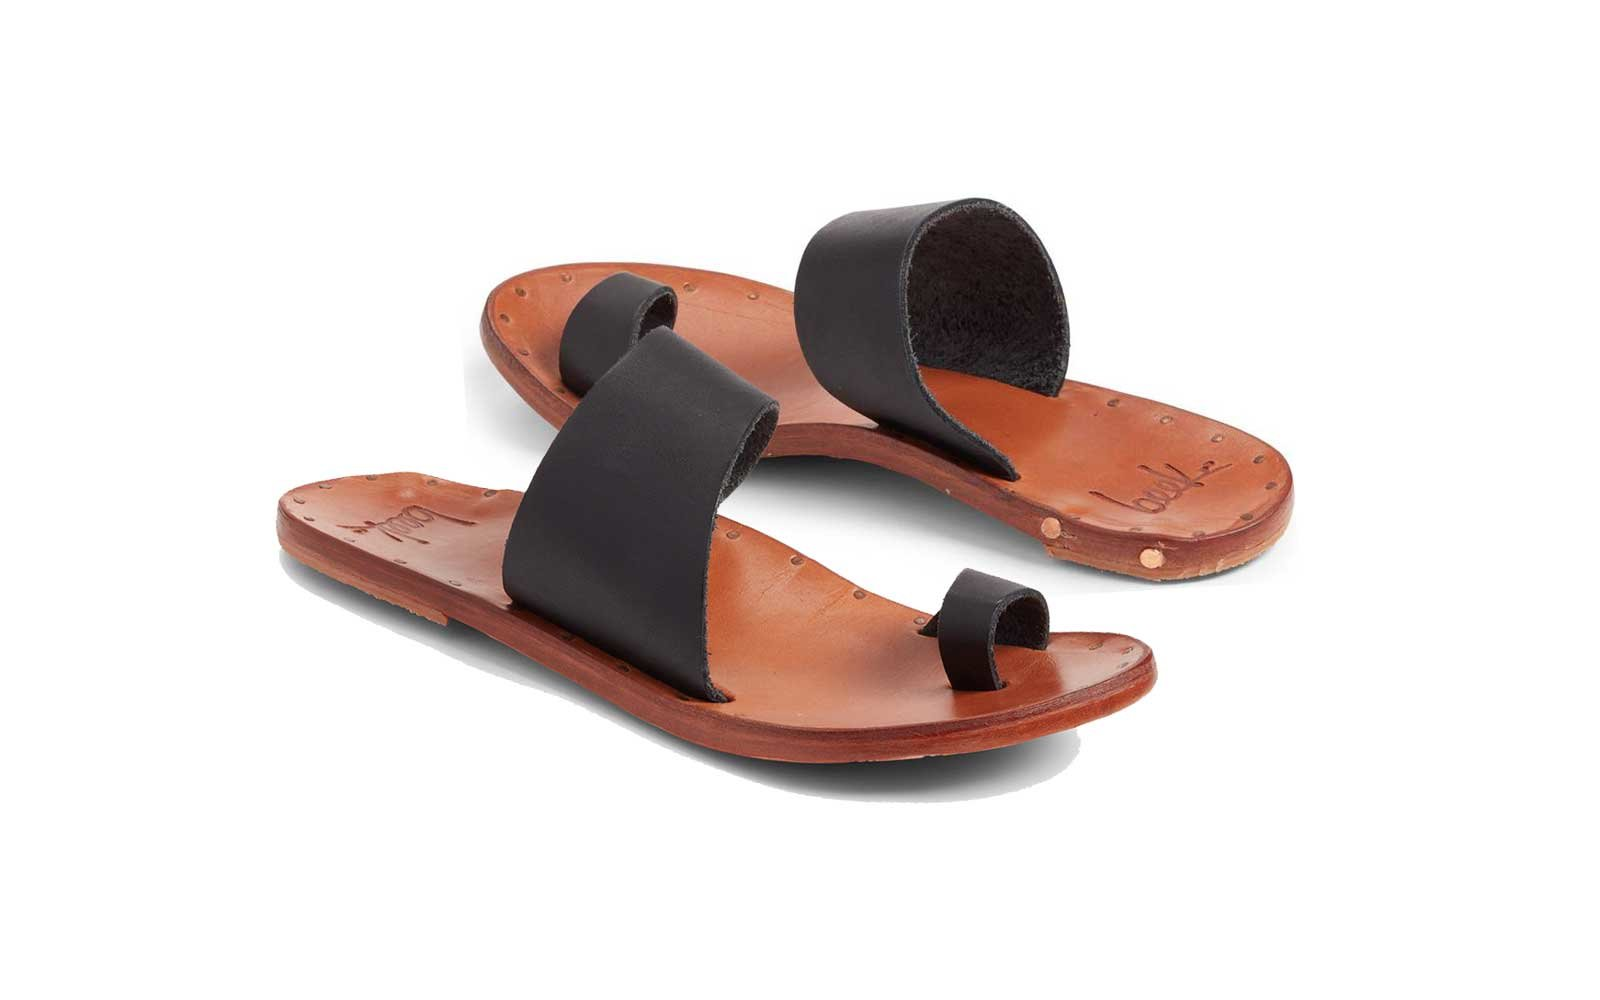 Best are the what sandals to wear advise to wear in everyday in 2019